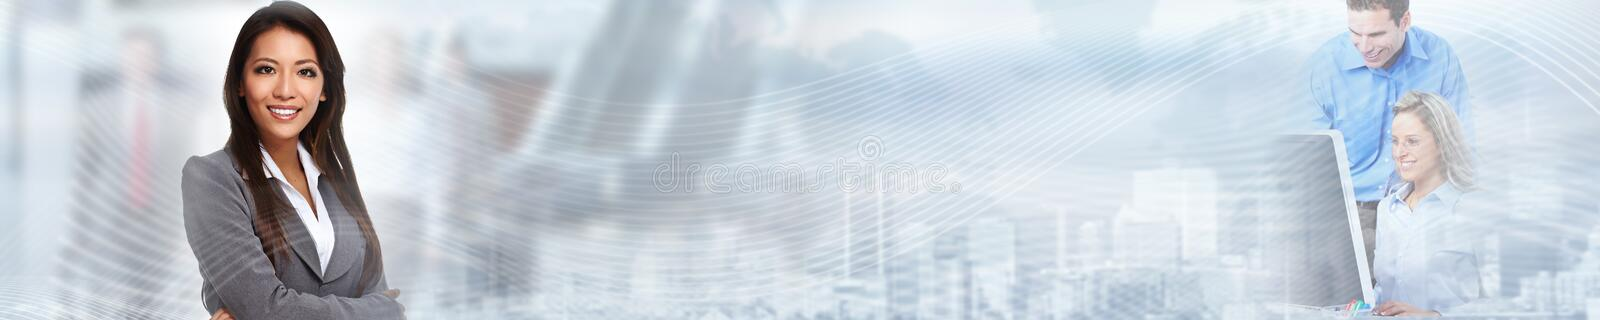 Chinese business woman royalty free stock photography